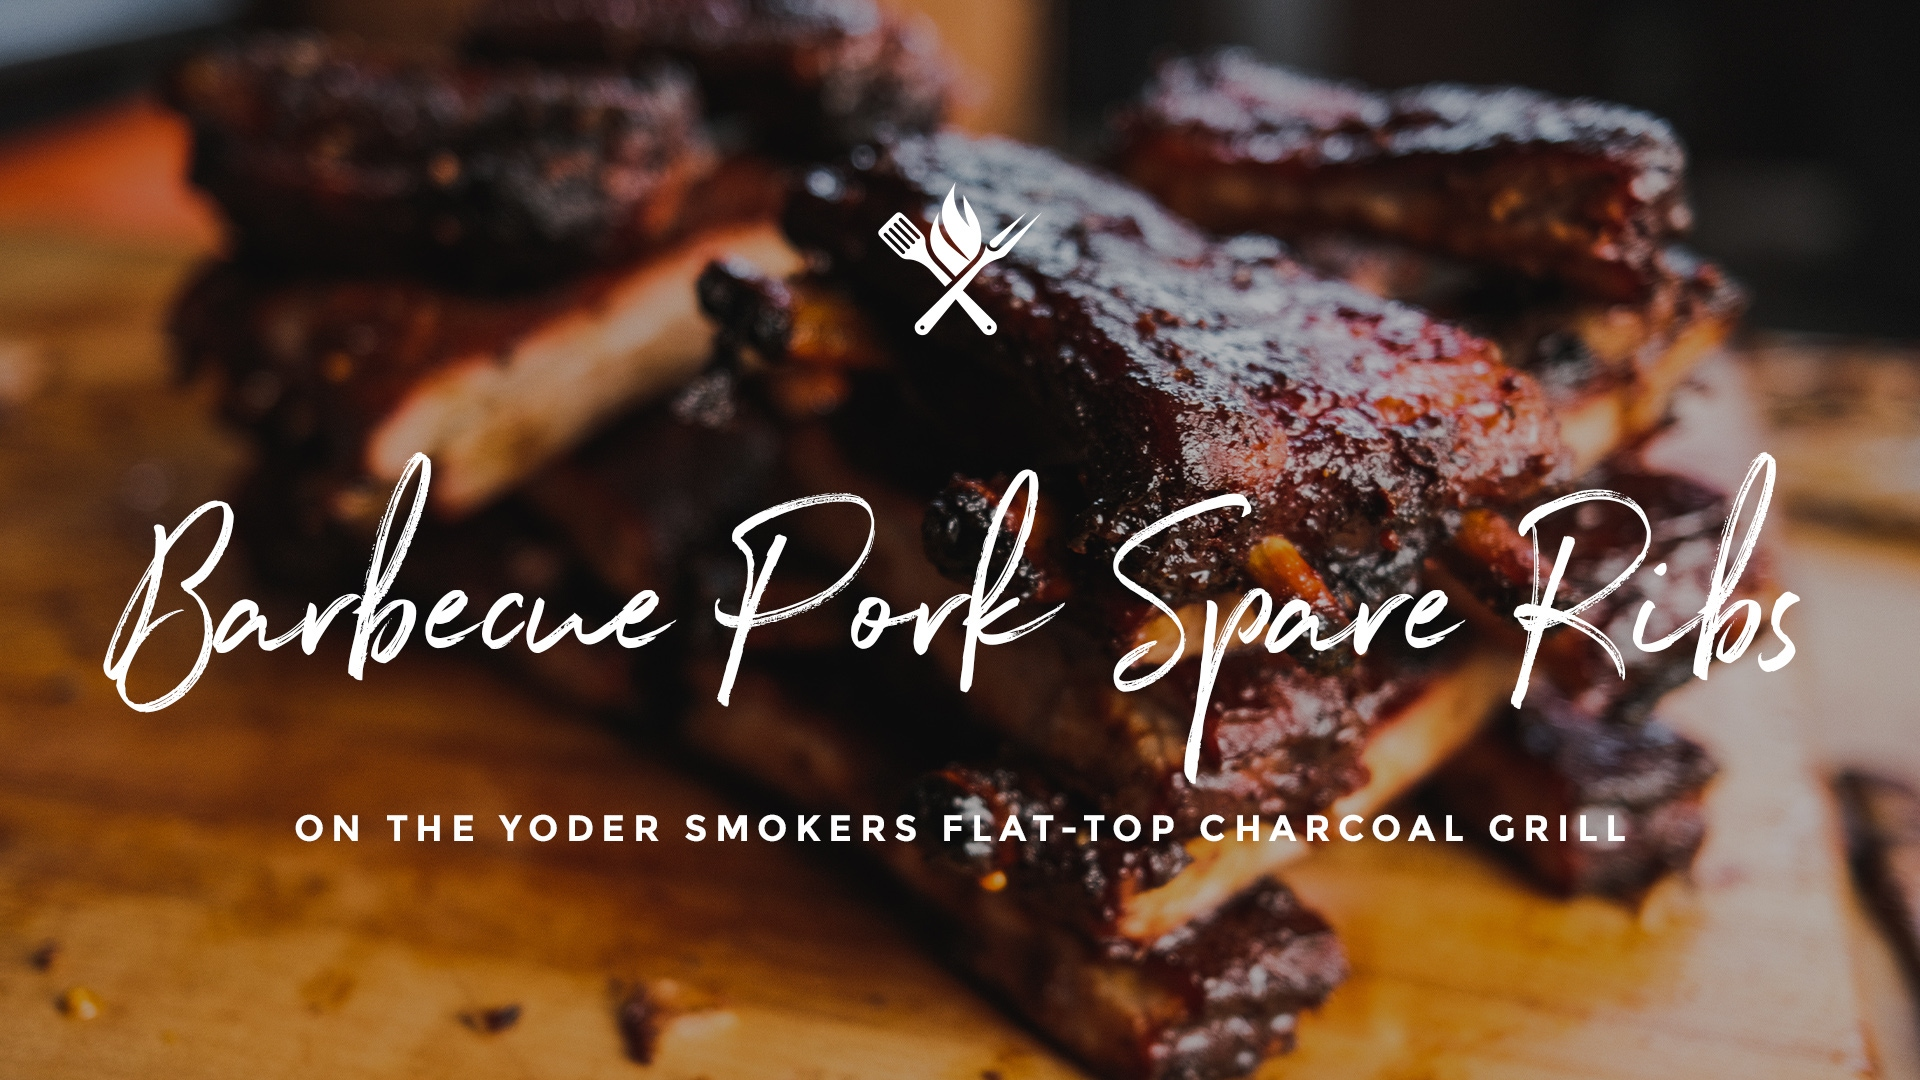 How to make Barbecue Pork Spare Ribs on the Yoder Smokers Flattop Charcoal Grill